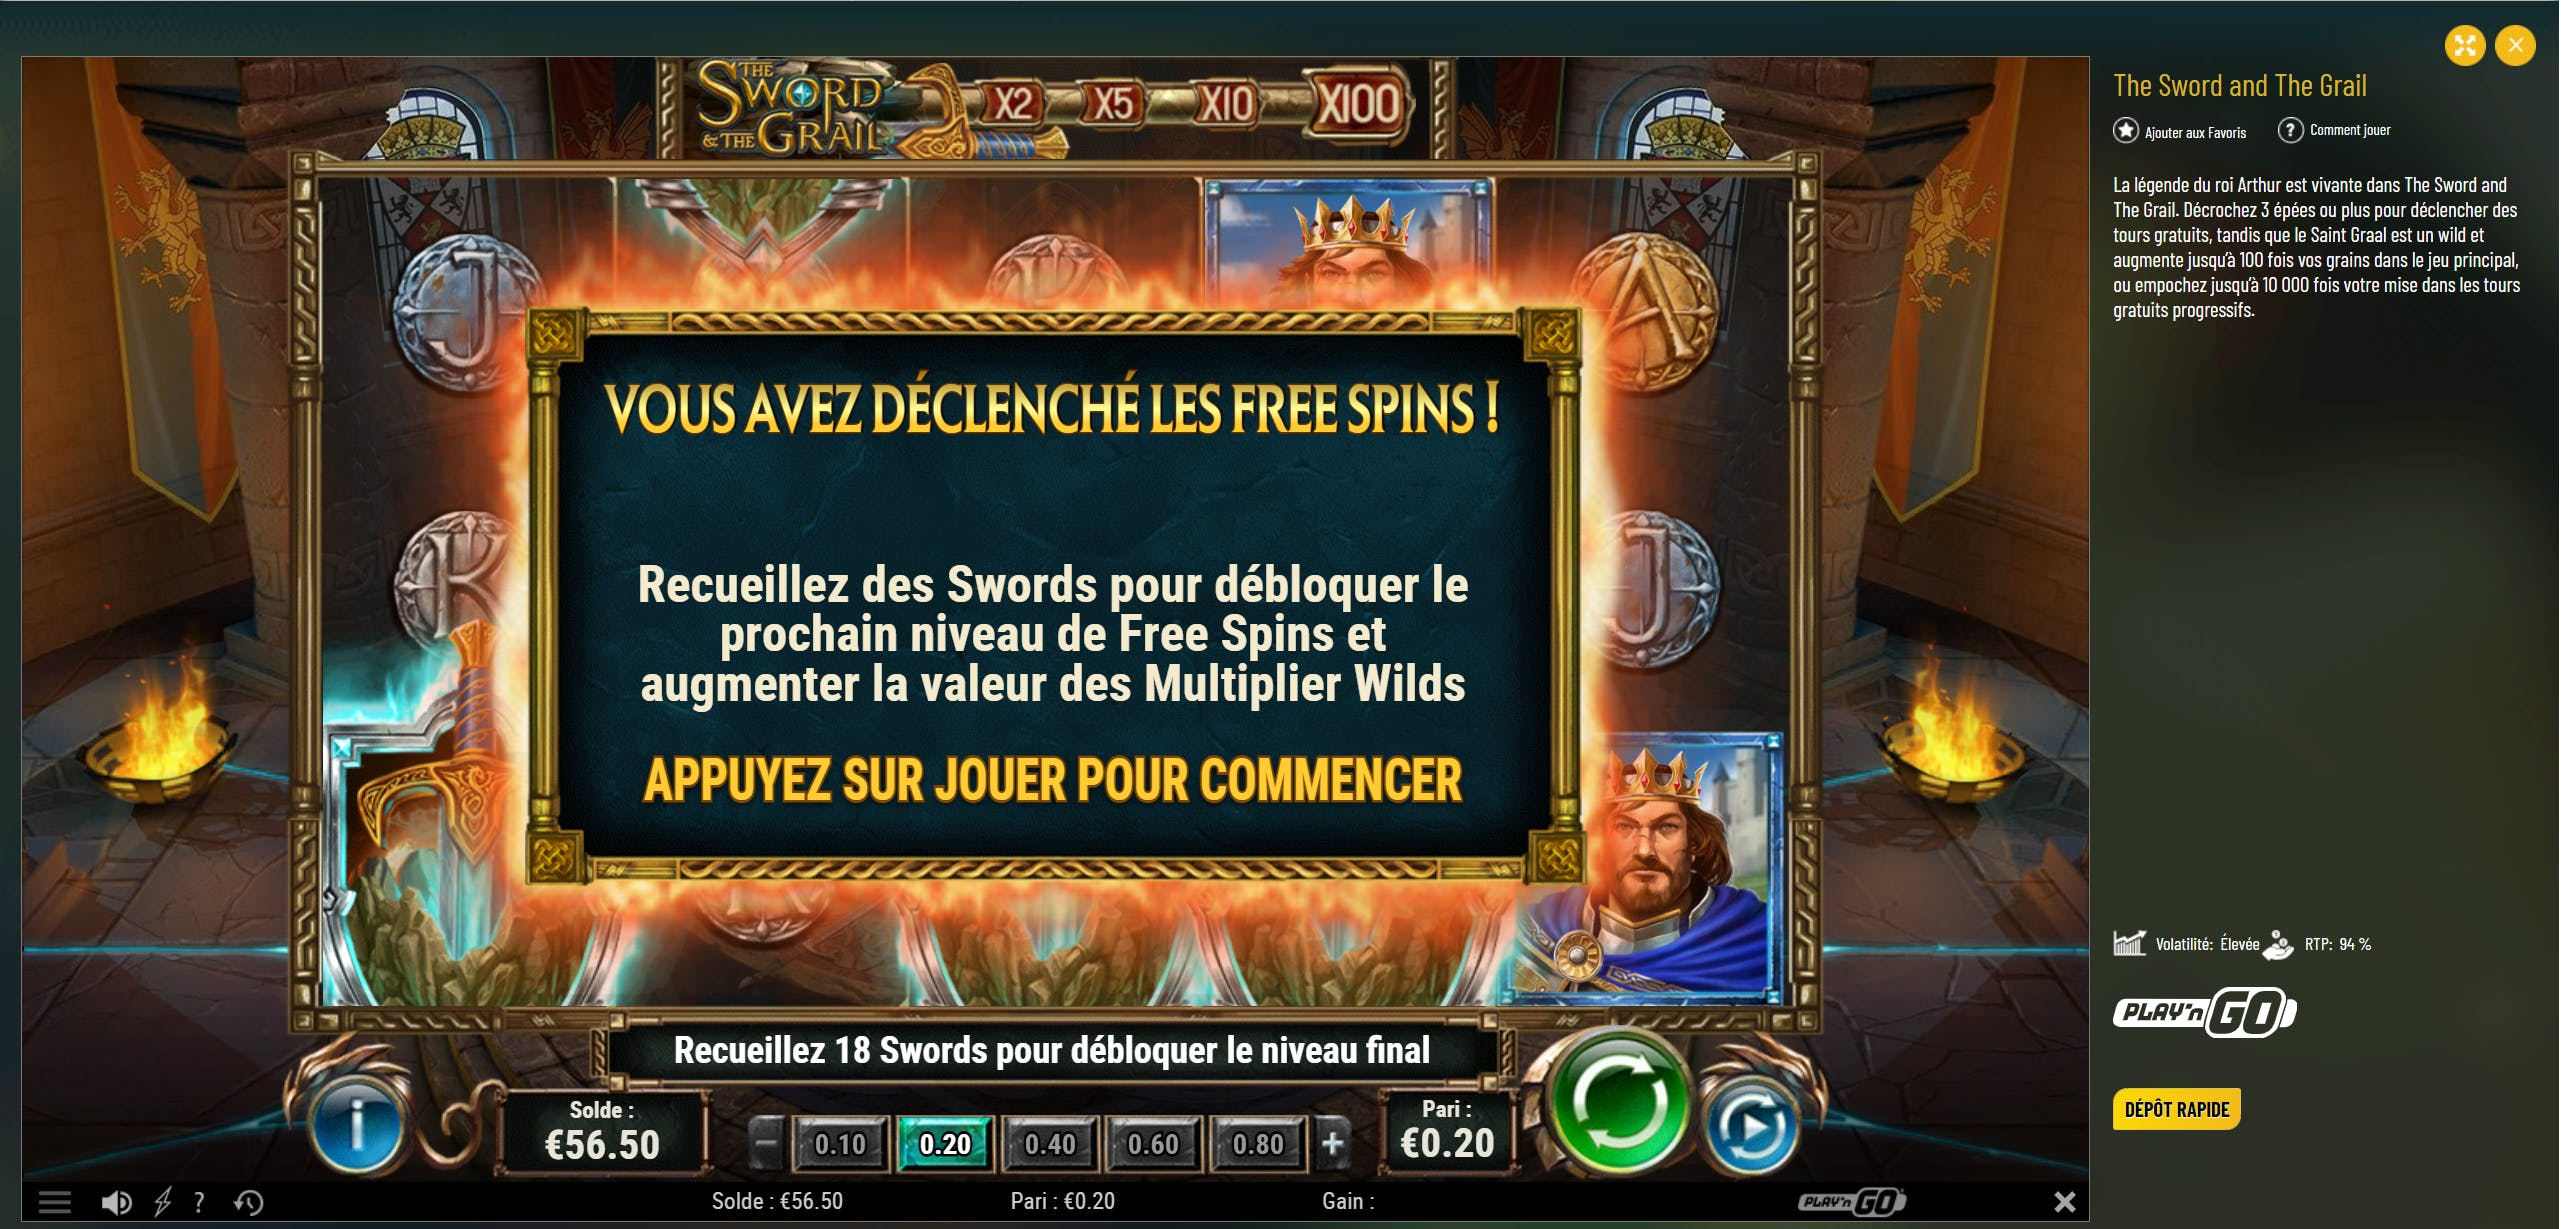 The Sword and the Grail Play'n Go slot Gameplay on Machance Casino